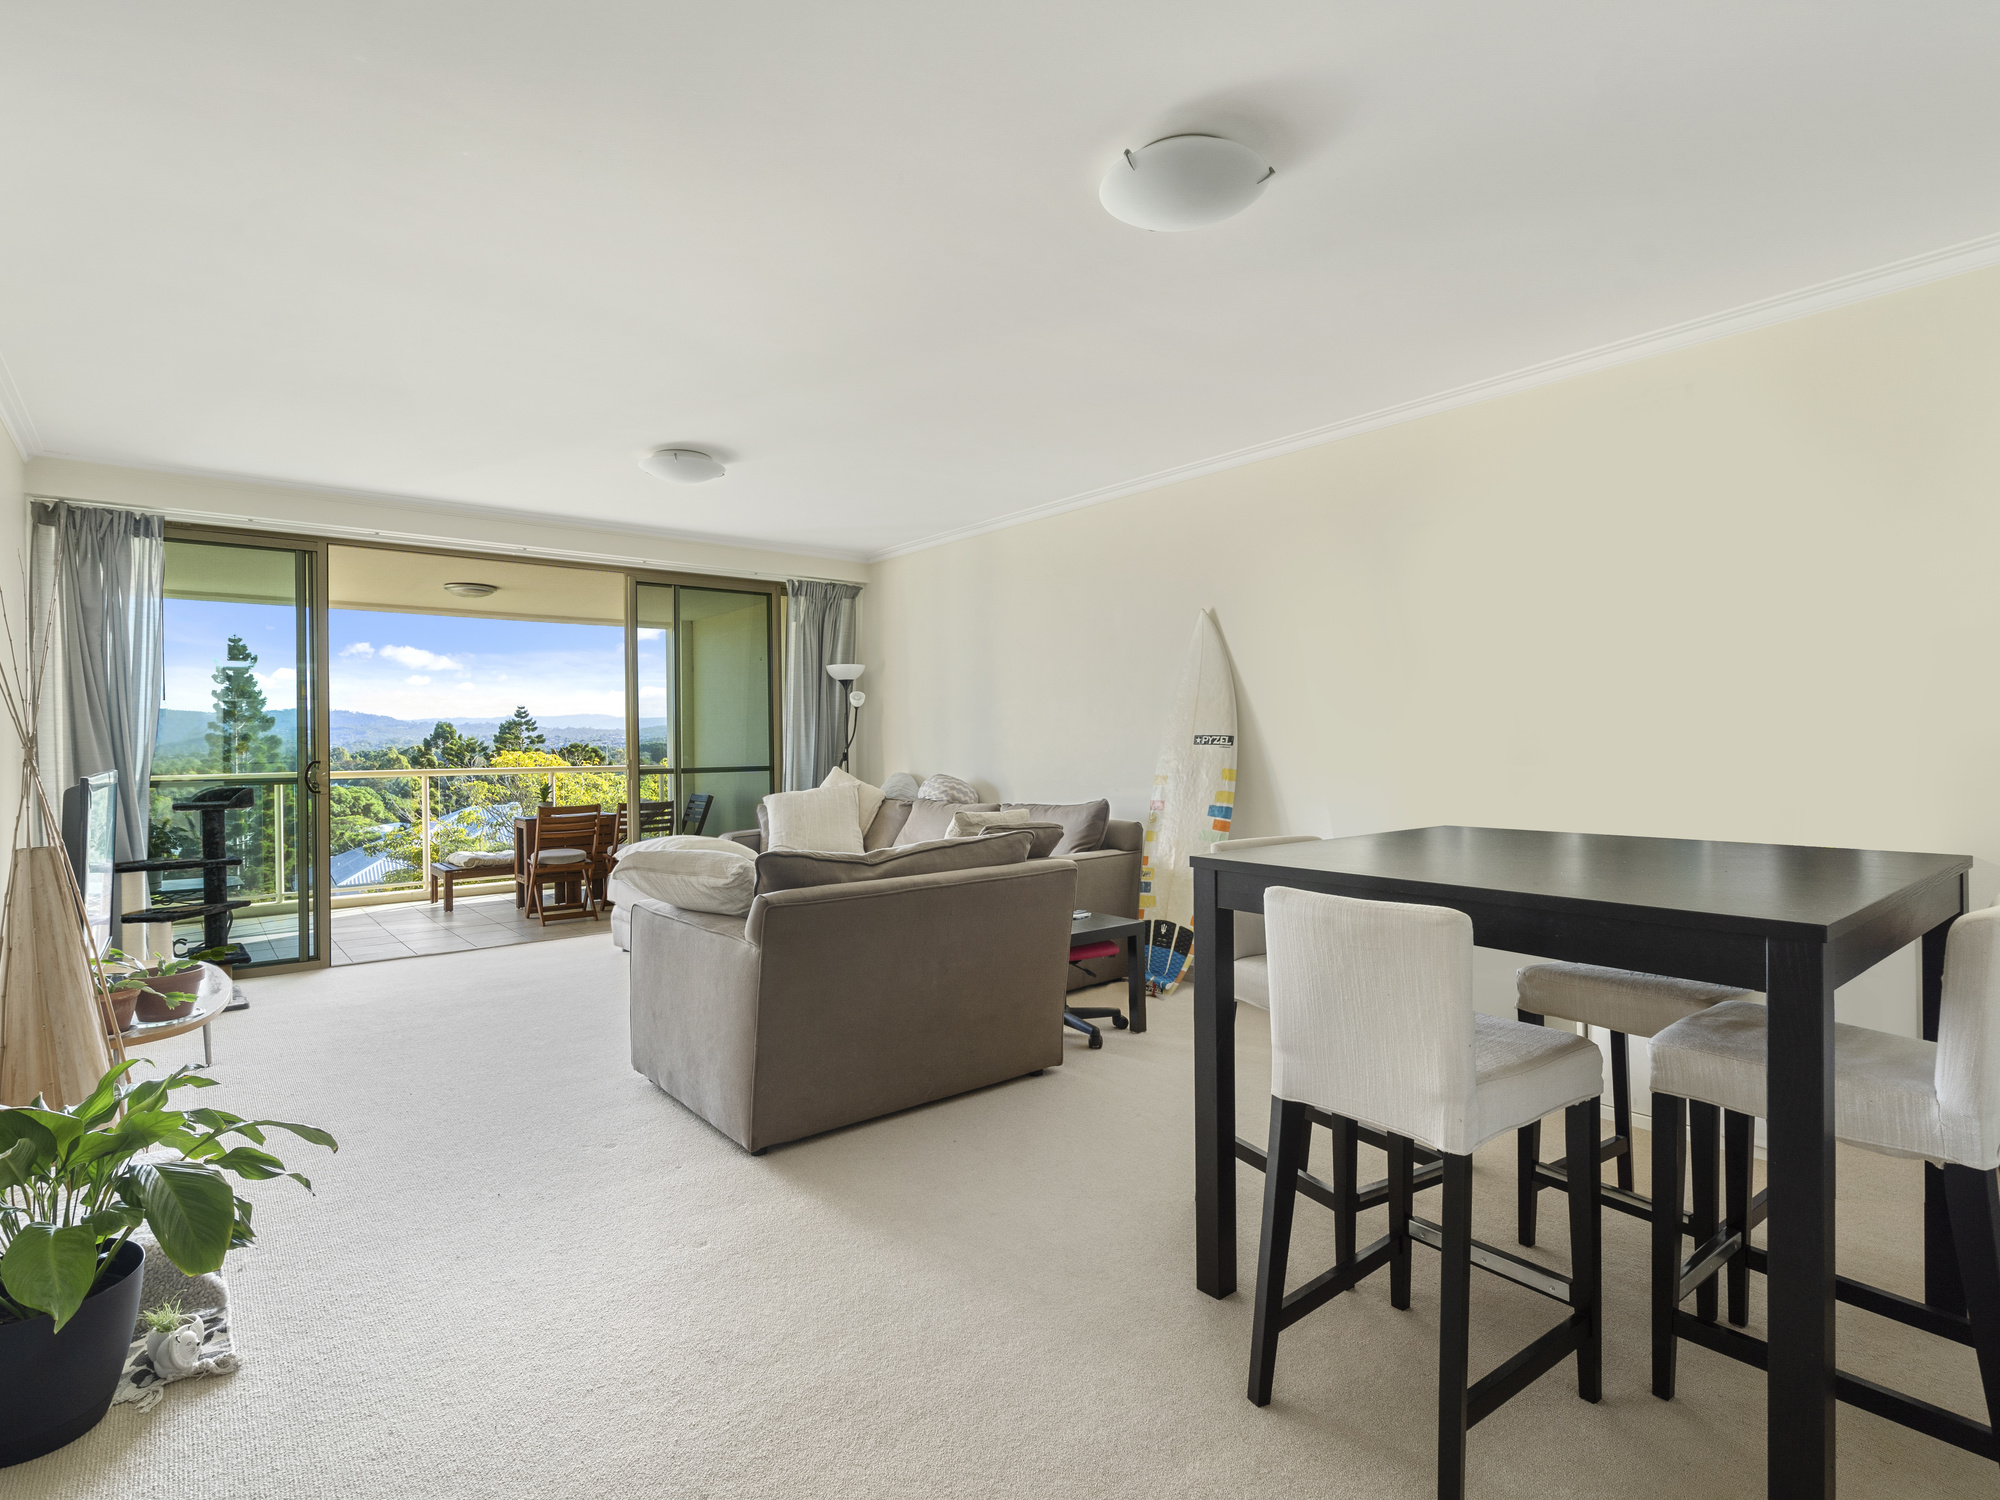 Real Estate | Gold Coast | Chevron Realty | 017 Open2view Id687061 4167 Ross Street